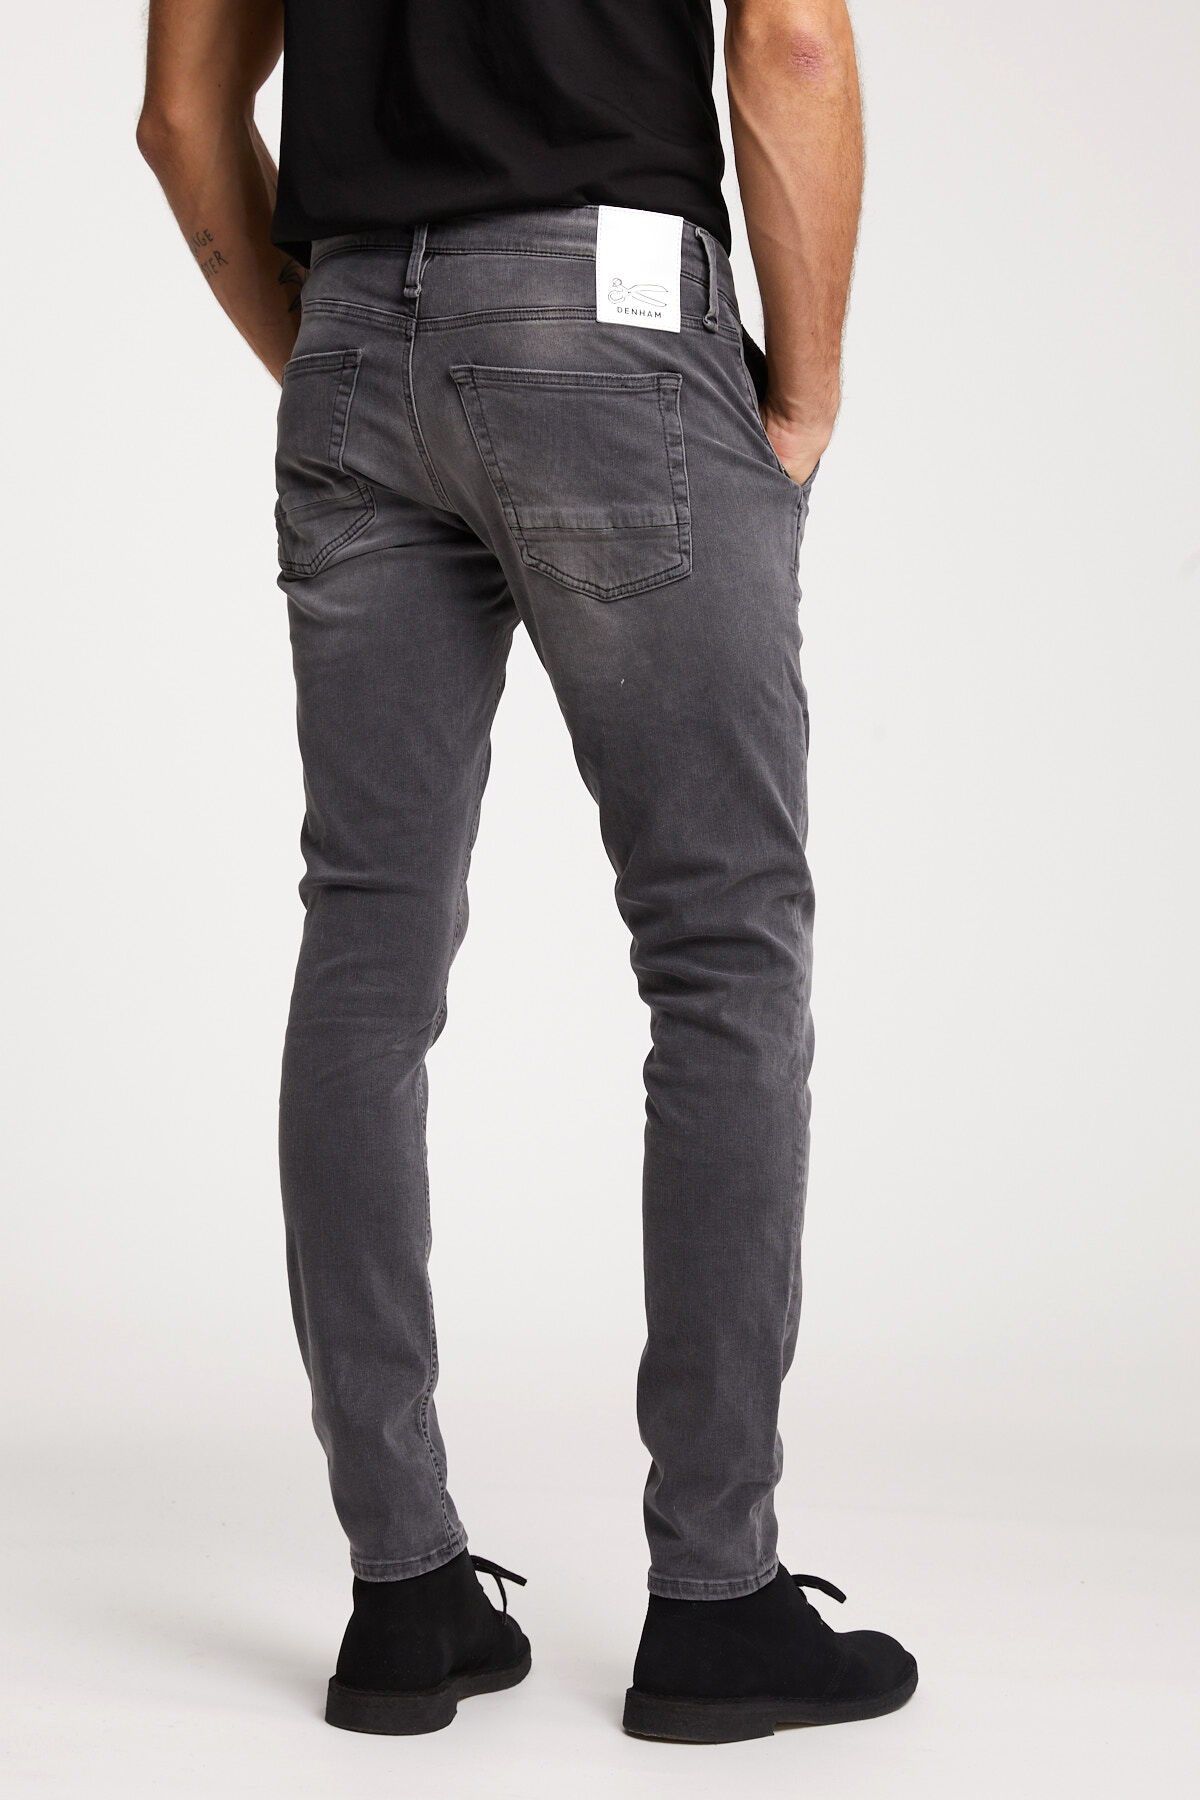 YORK Mid-Grey, Faded Denim - Slim, Tapered Fit